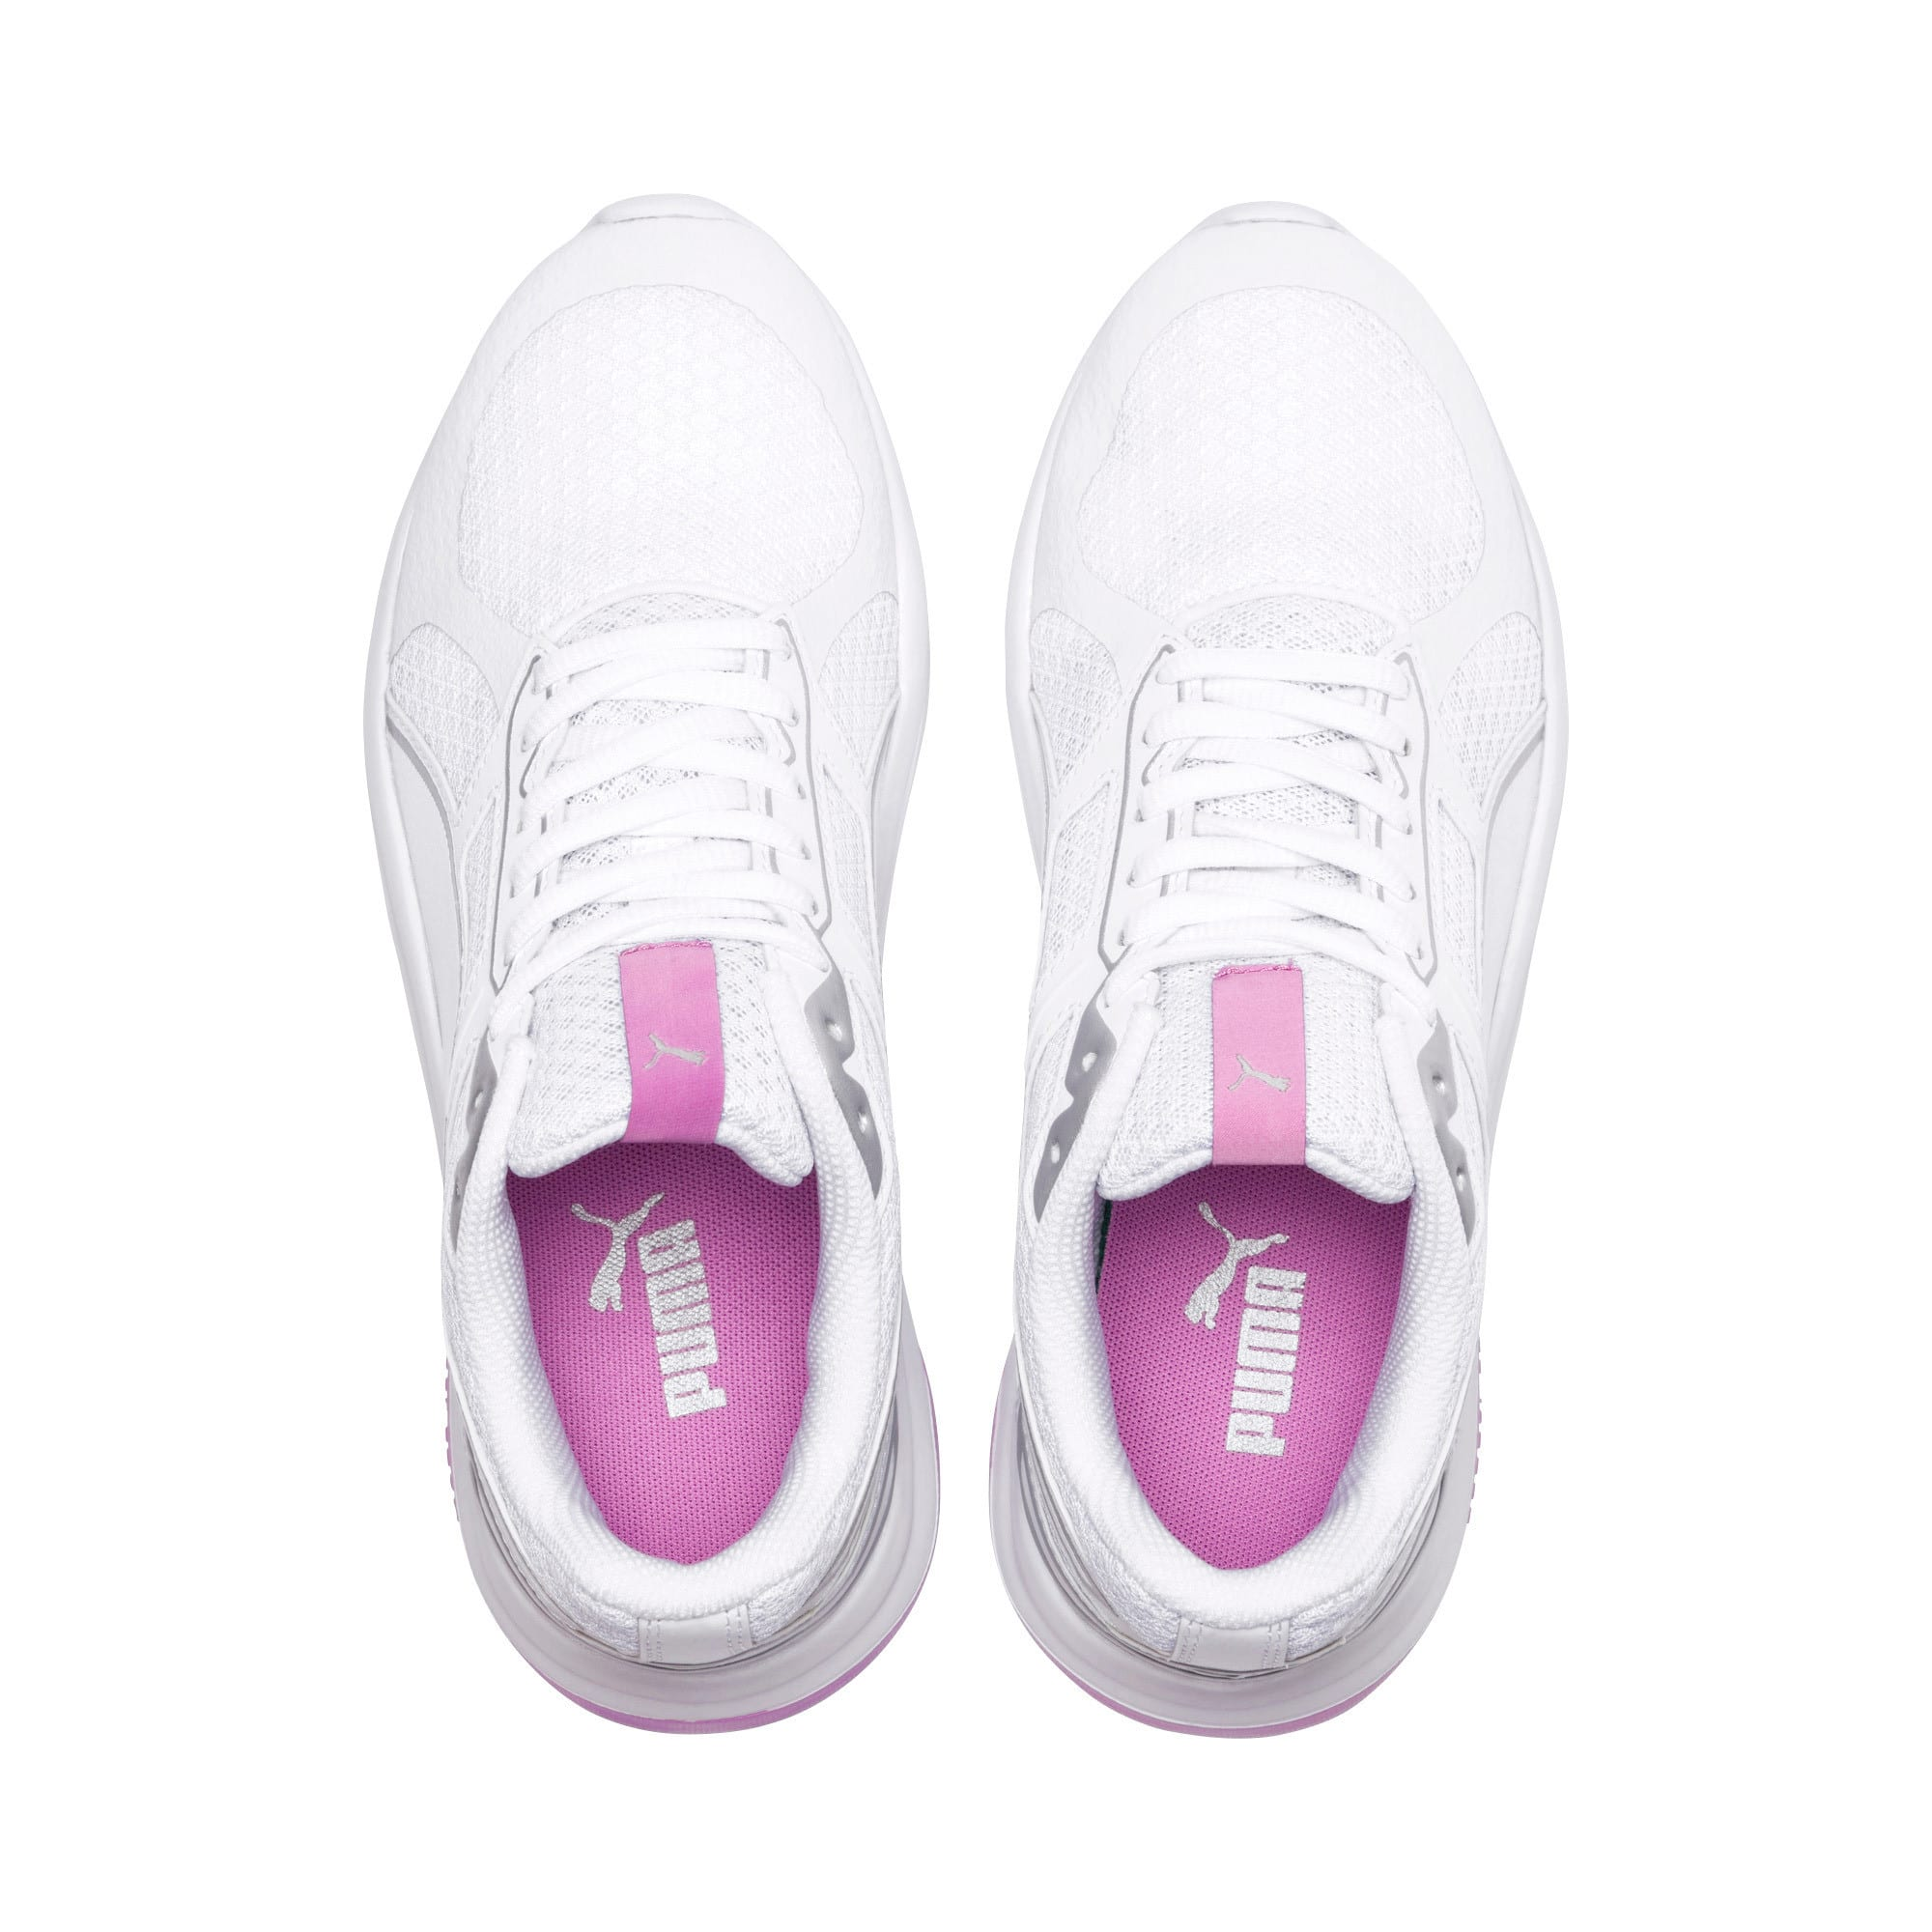 Thumbnail 6 of Escaper Tech Sneakers, Puma White-Puma White-Orchid, medium-IND